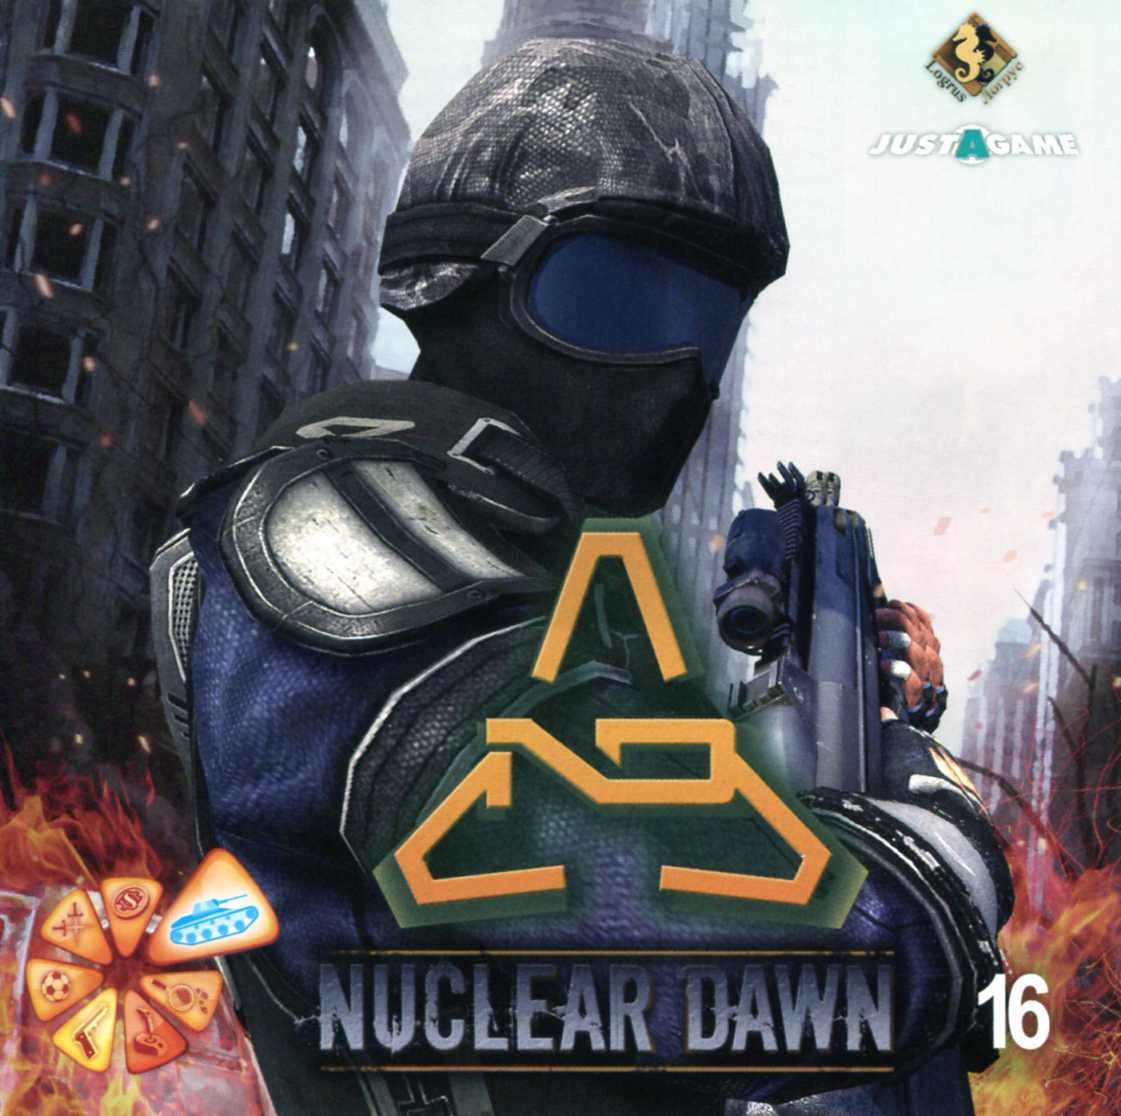 Nuclear Dawn (activation key in Steam)